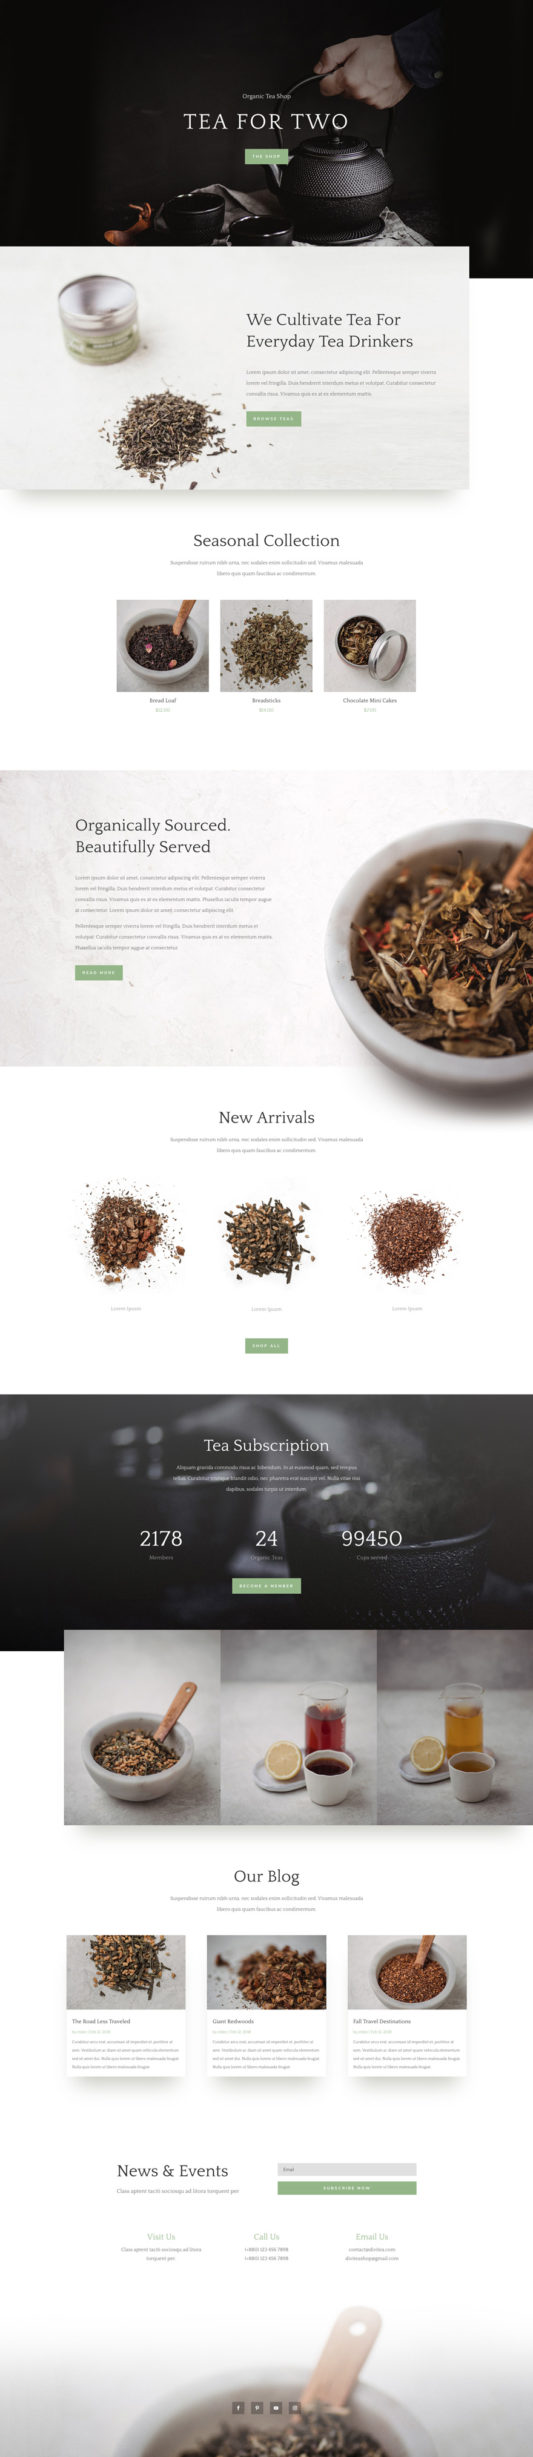 Tea Shop Web Design 7